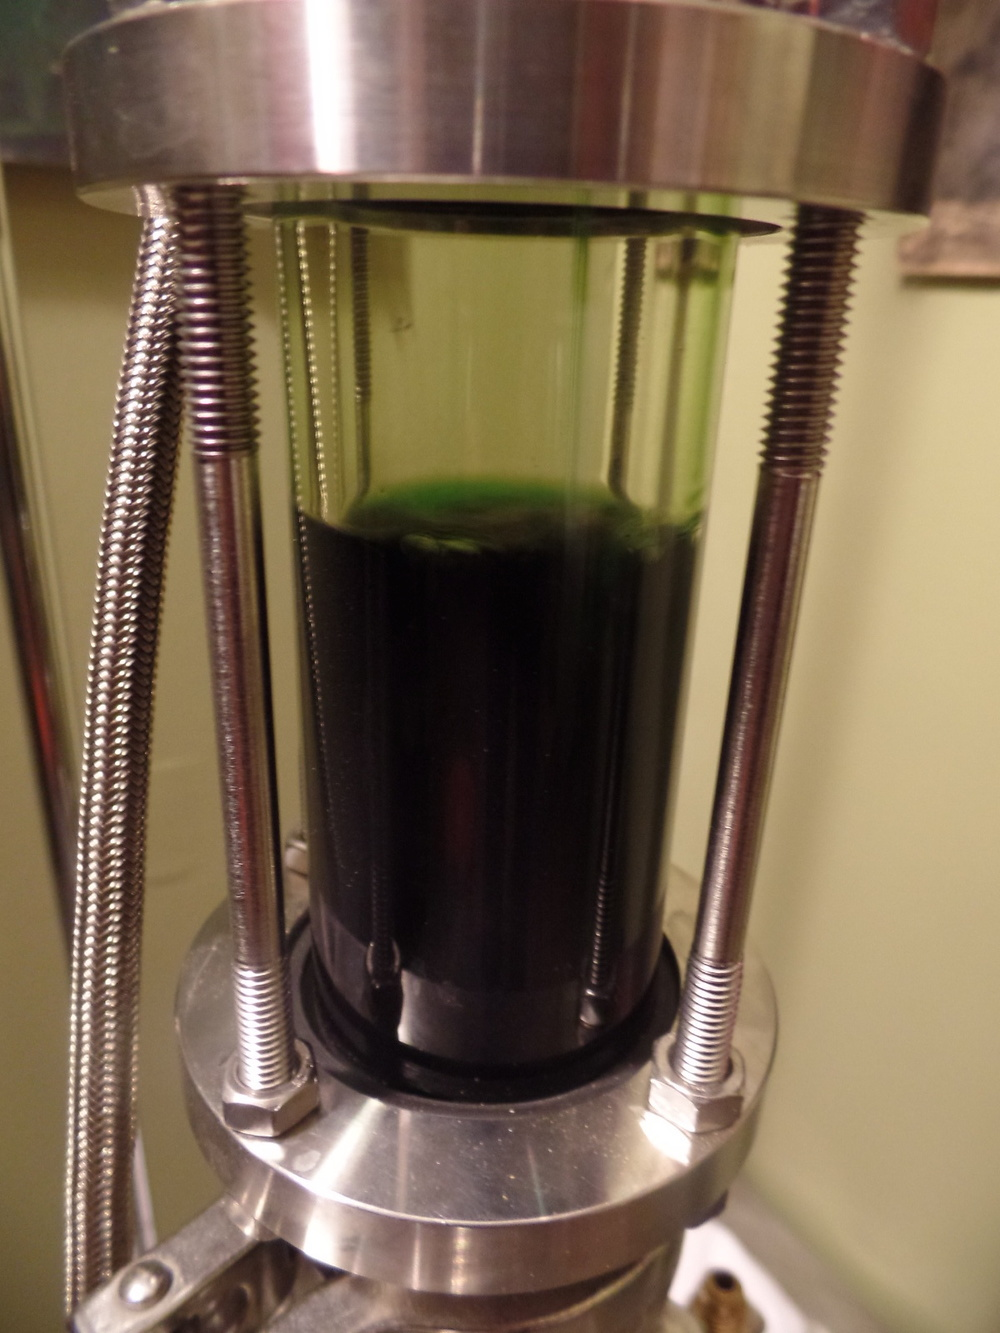 Alcohol Extraction via Soxhlet under vacuum with organic grape alcohol. This method produces the same yields as CO2 Extraction at a fraction of the cost.